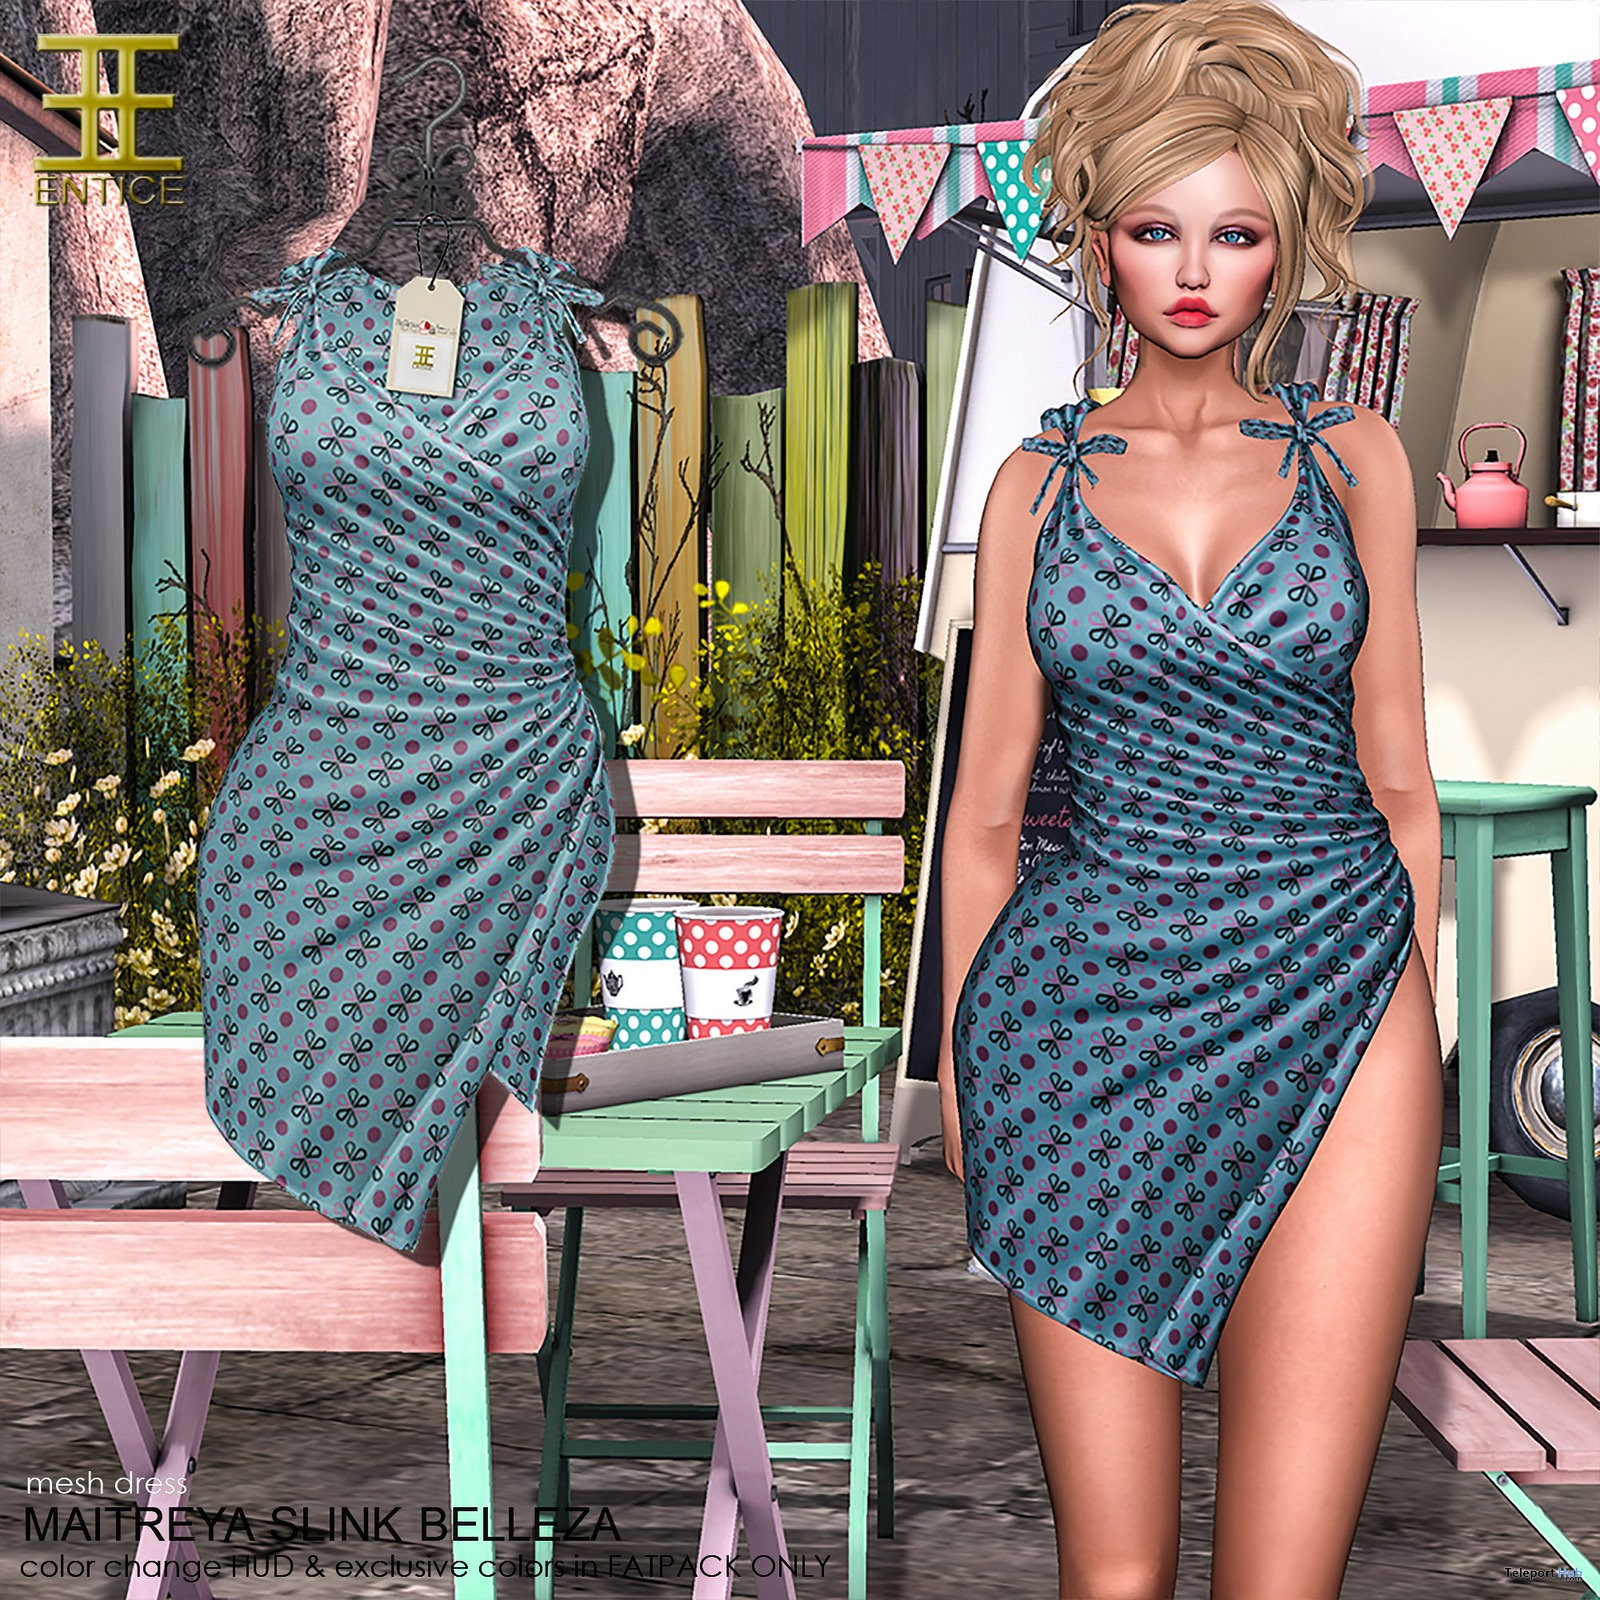 The Greatest Dress Blue The Makeover Room Event September 2017 Group Gift by ENTICE - Teleport Hub - teleporthub.com